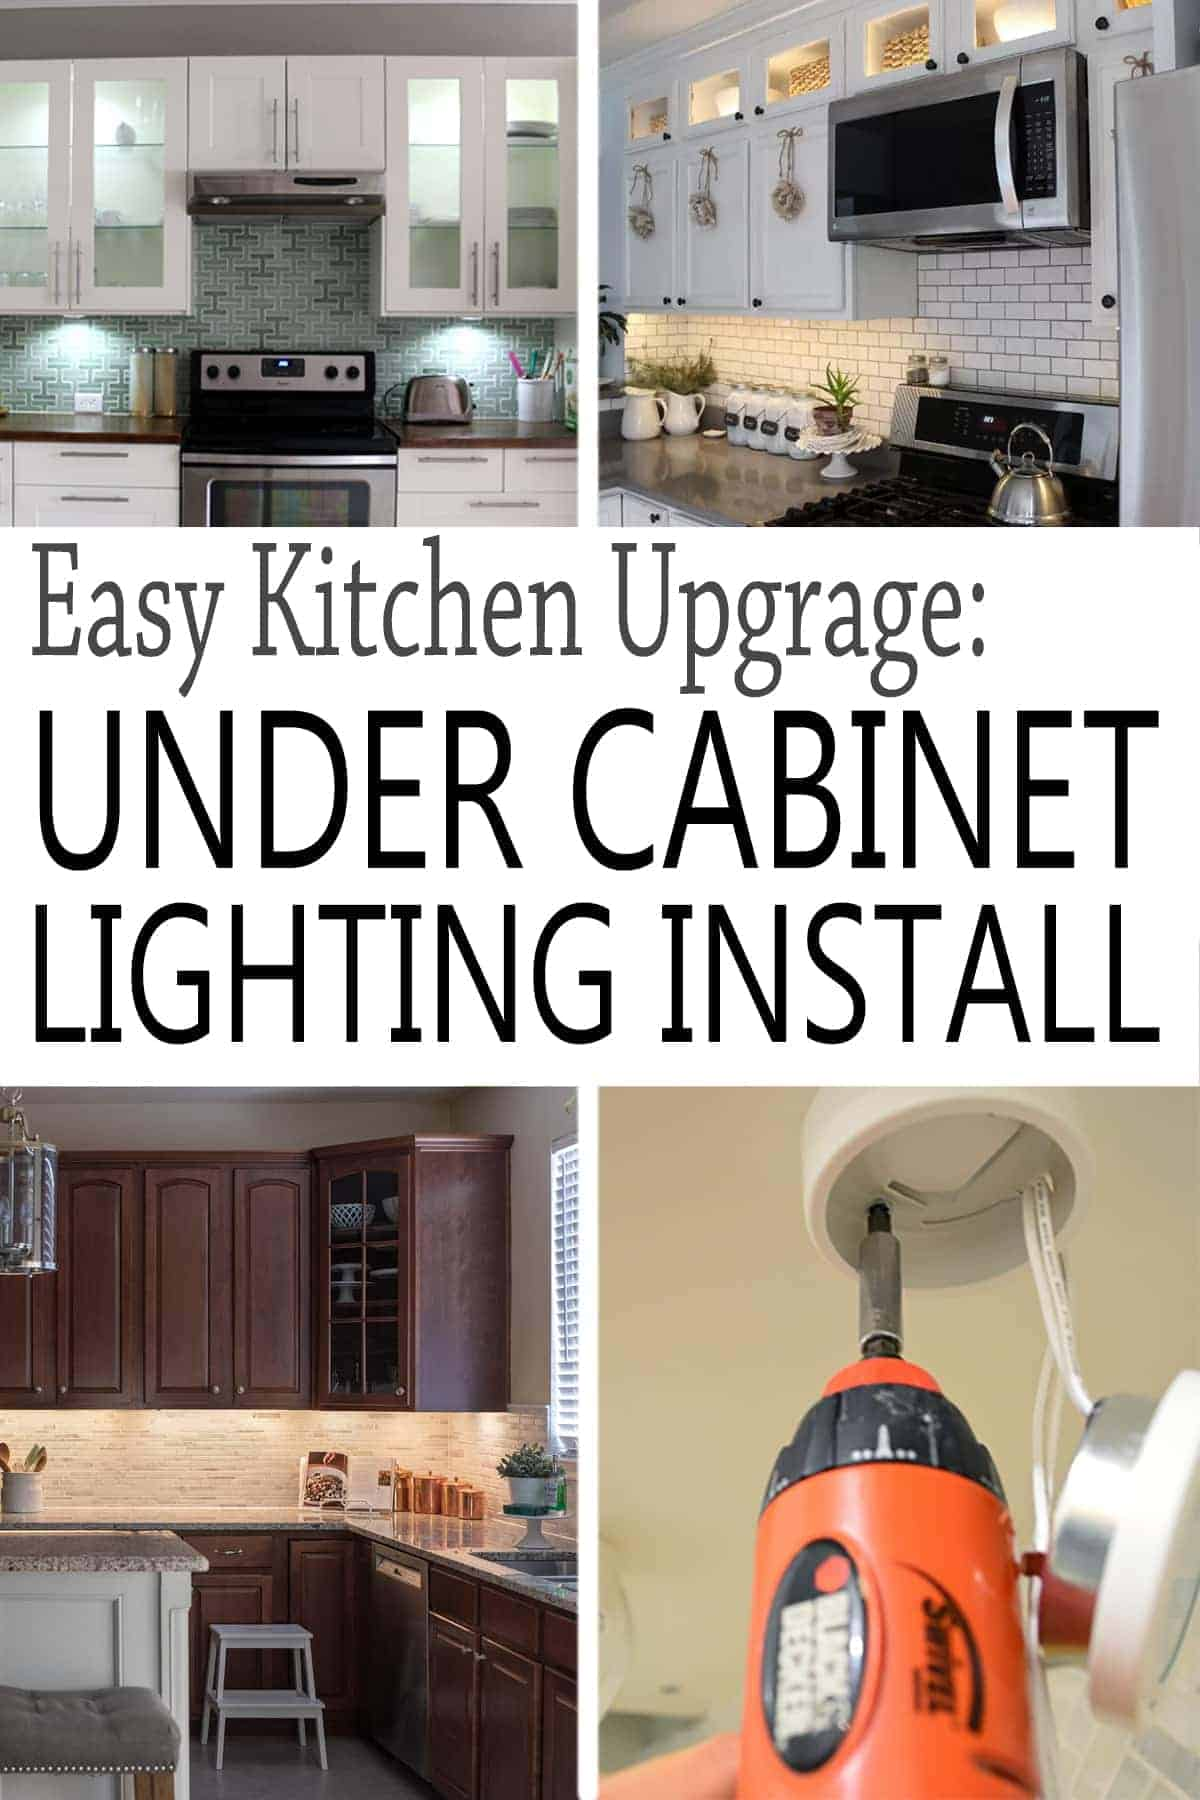 How to Install Under Cabinet Lighting. Images of 3 kitchens with under cabinet lighting and a DIY install image.